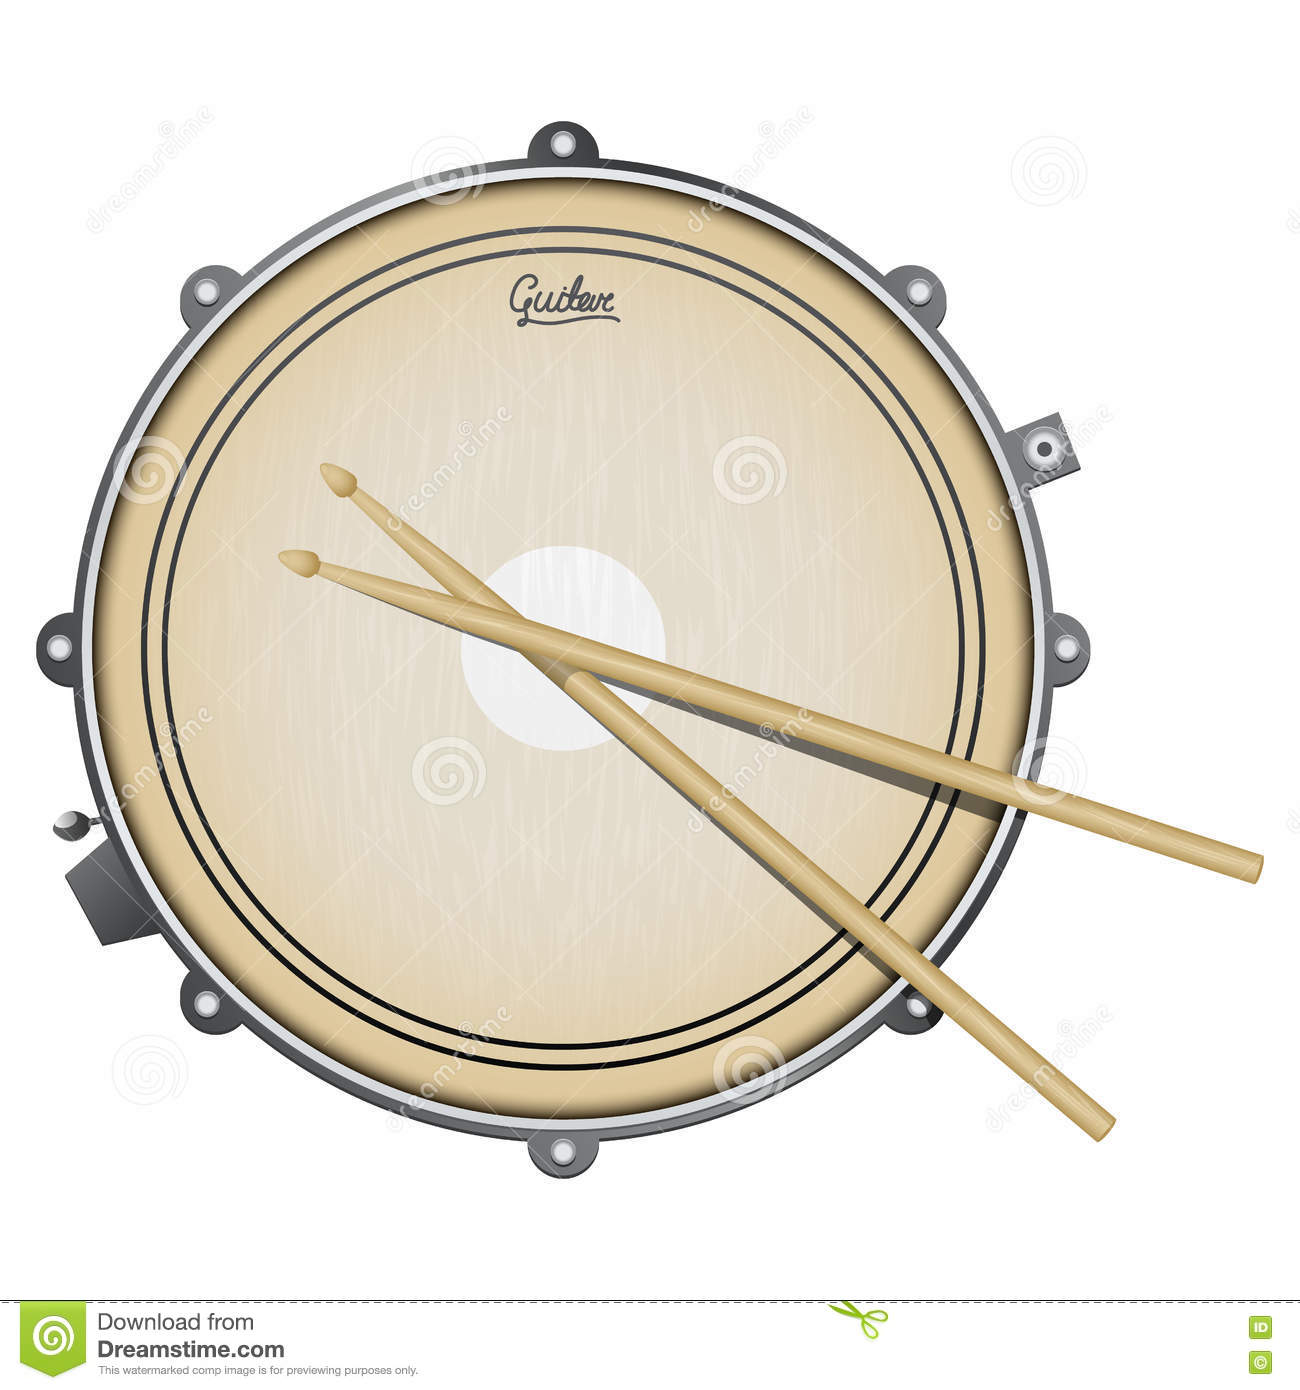 Snare Drum Realistic Illustration With Percussion Instrument Isolated On White Sticks